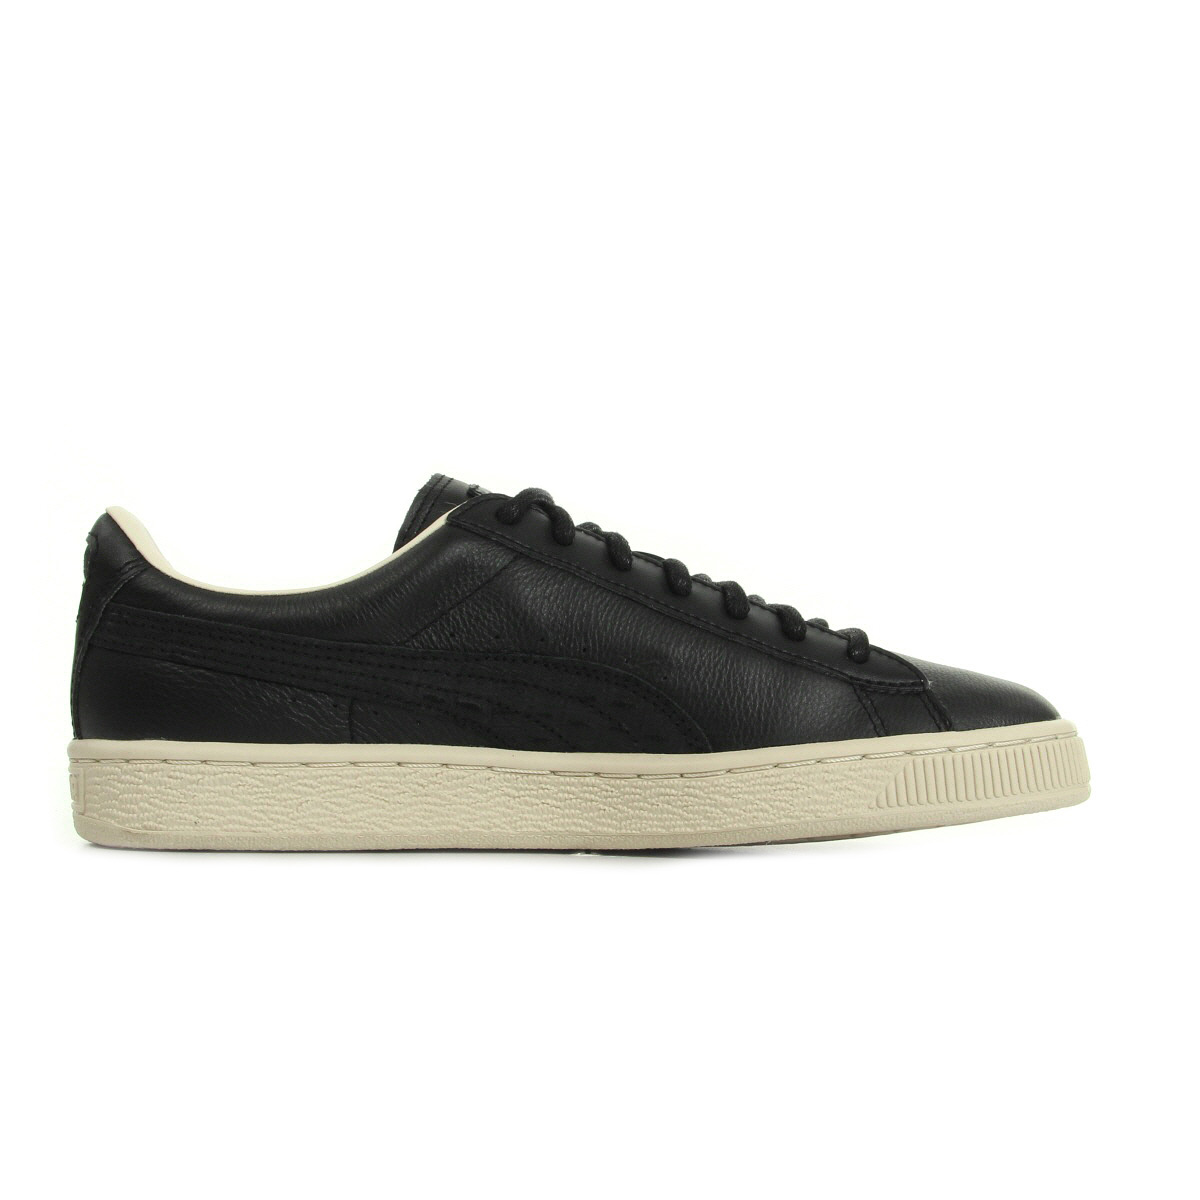 Puma Classic Citi Black 36135204, Baskets mode homme